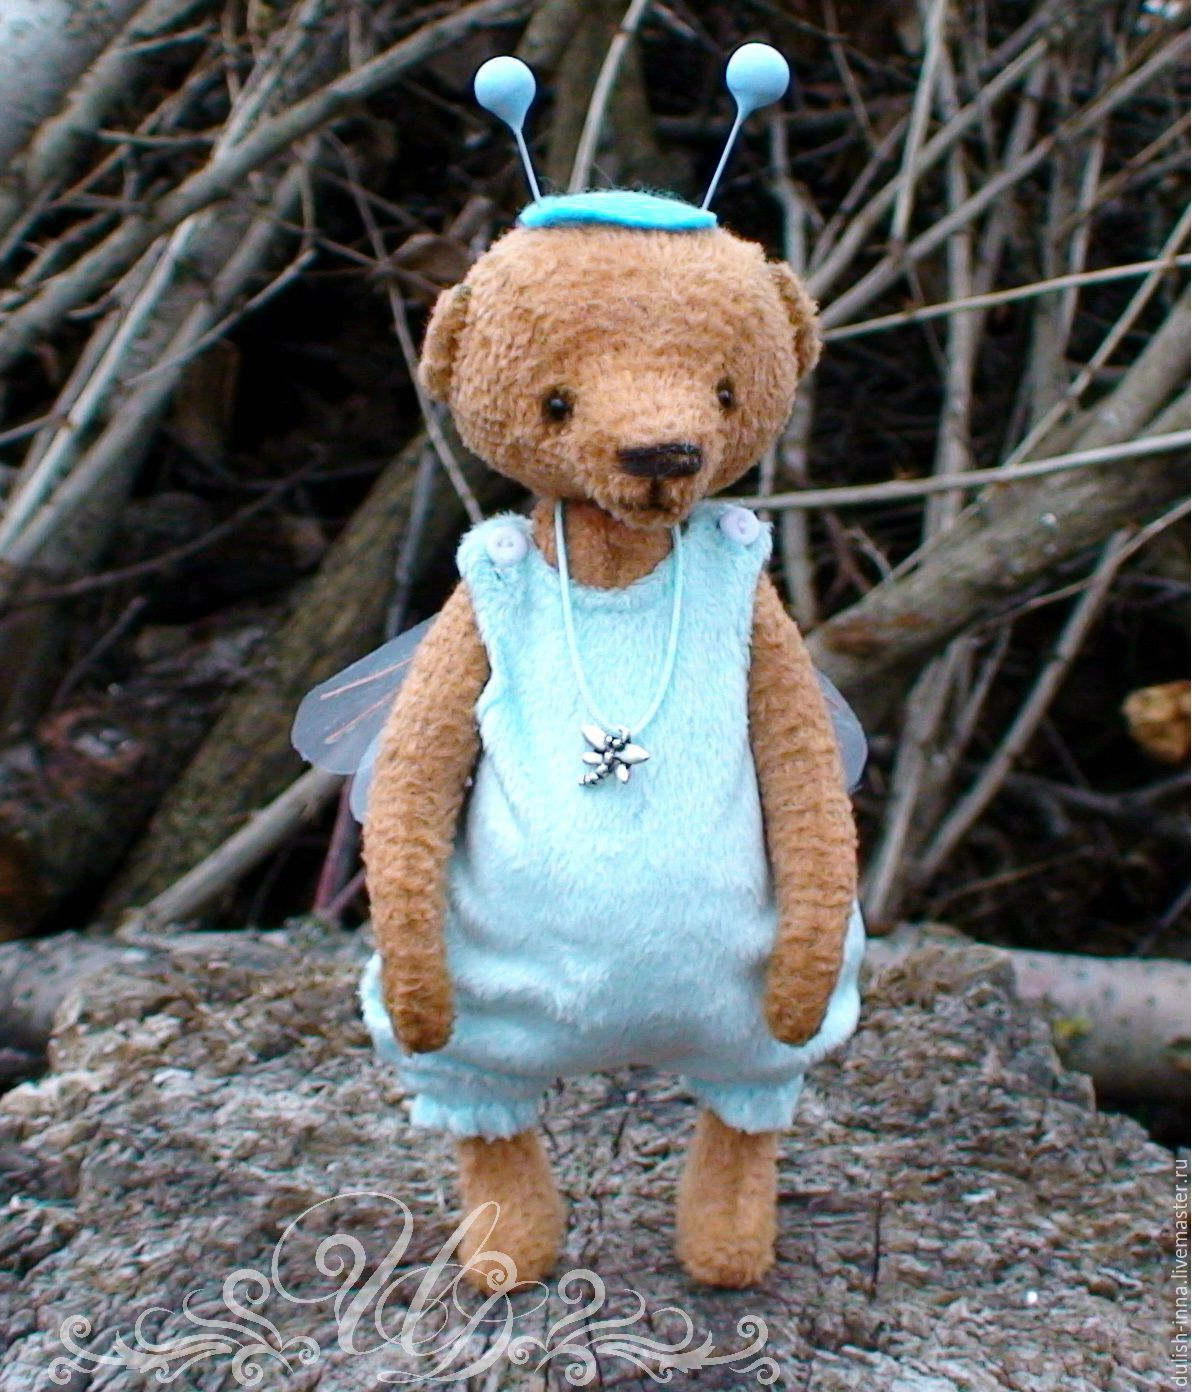 Teddy bear handmade, original Teddy bear, Teddy bear to buy, Teddy bear gift, a Teddy bear, a dragonfly, Teddy bear, Teddy, collectible toy